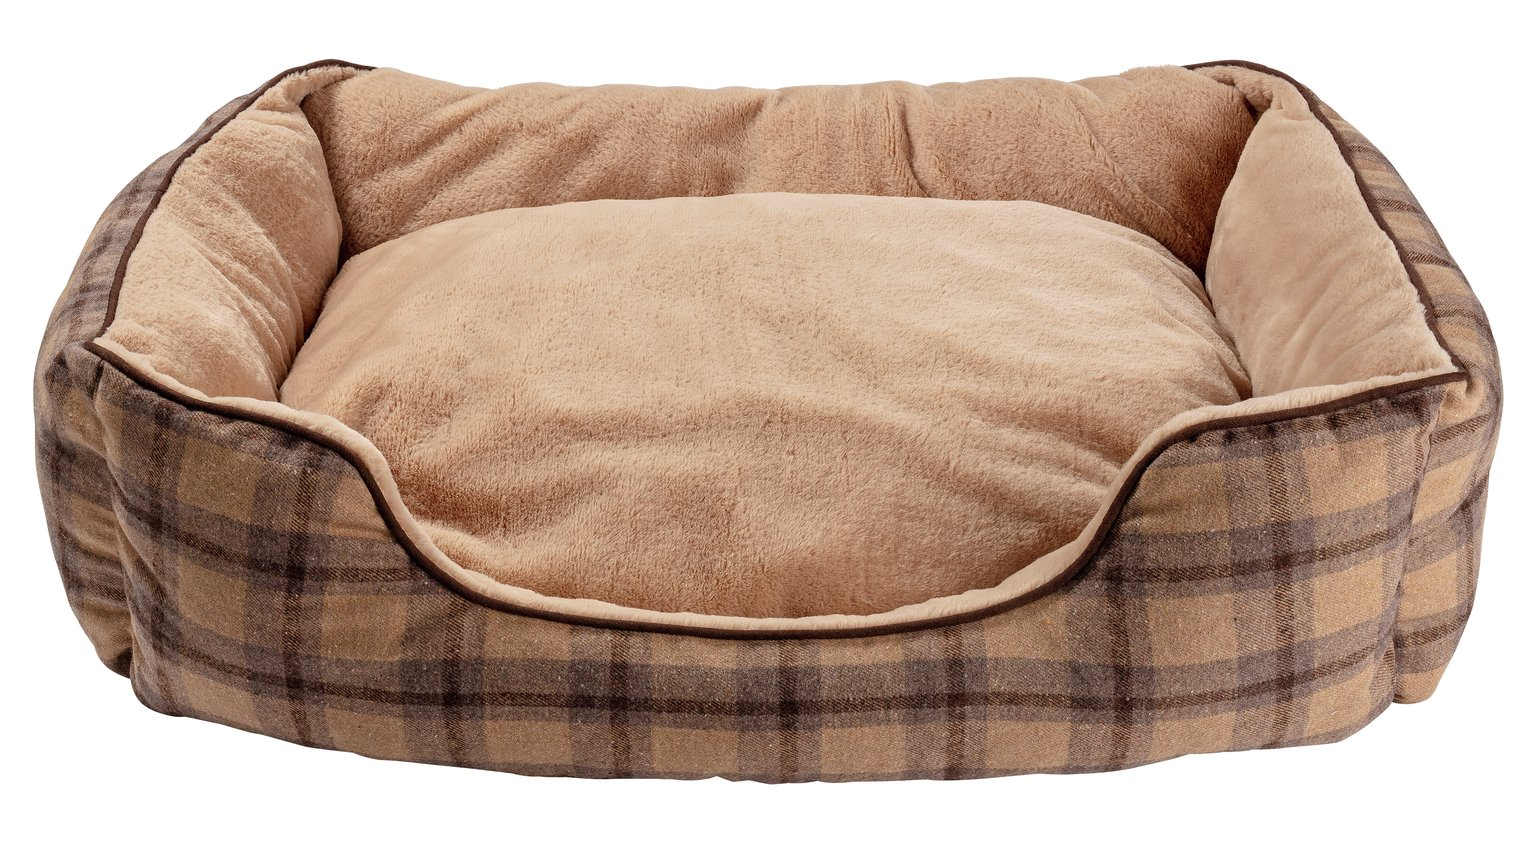 Pineham Memory Foam Square Pet Bed - Large